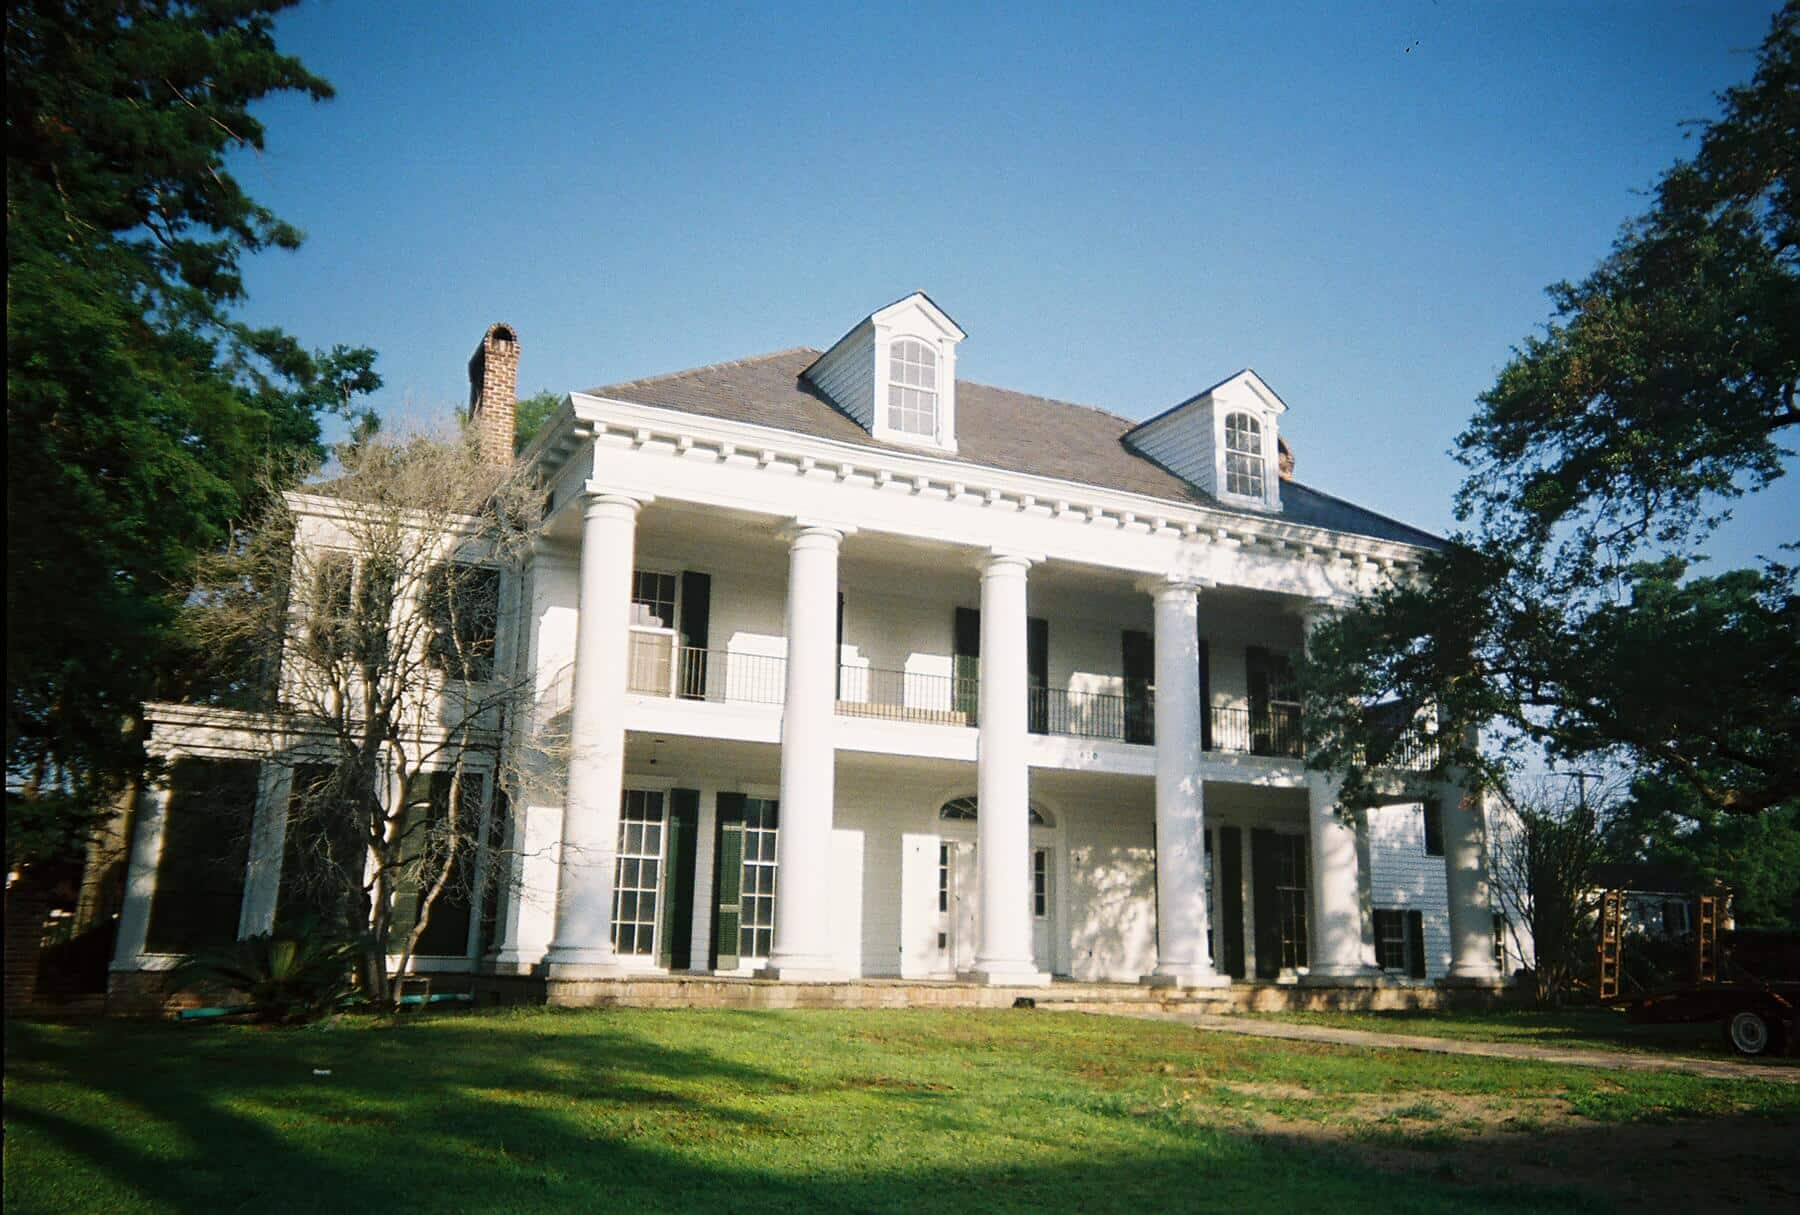 A old house in Metairie, LA